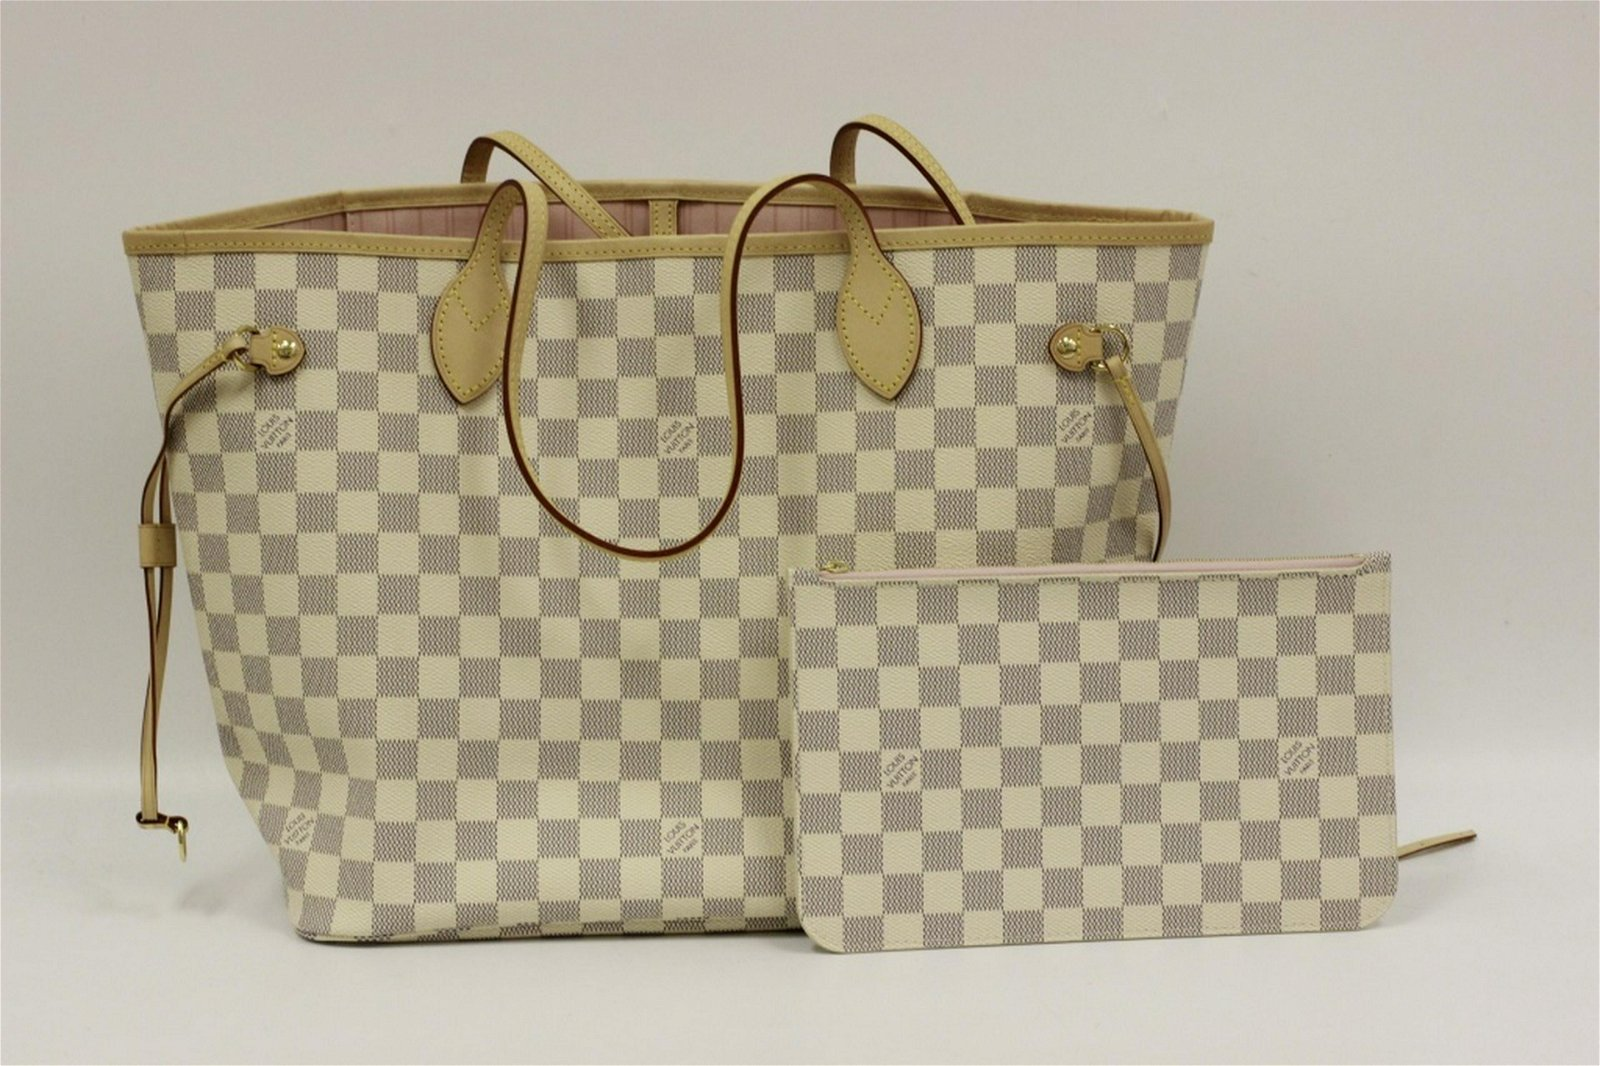 Louis Vuitton Neo Neverfull Tote Bag